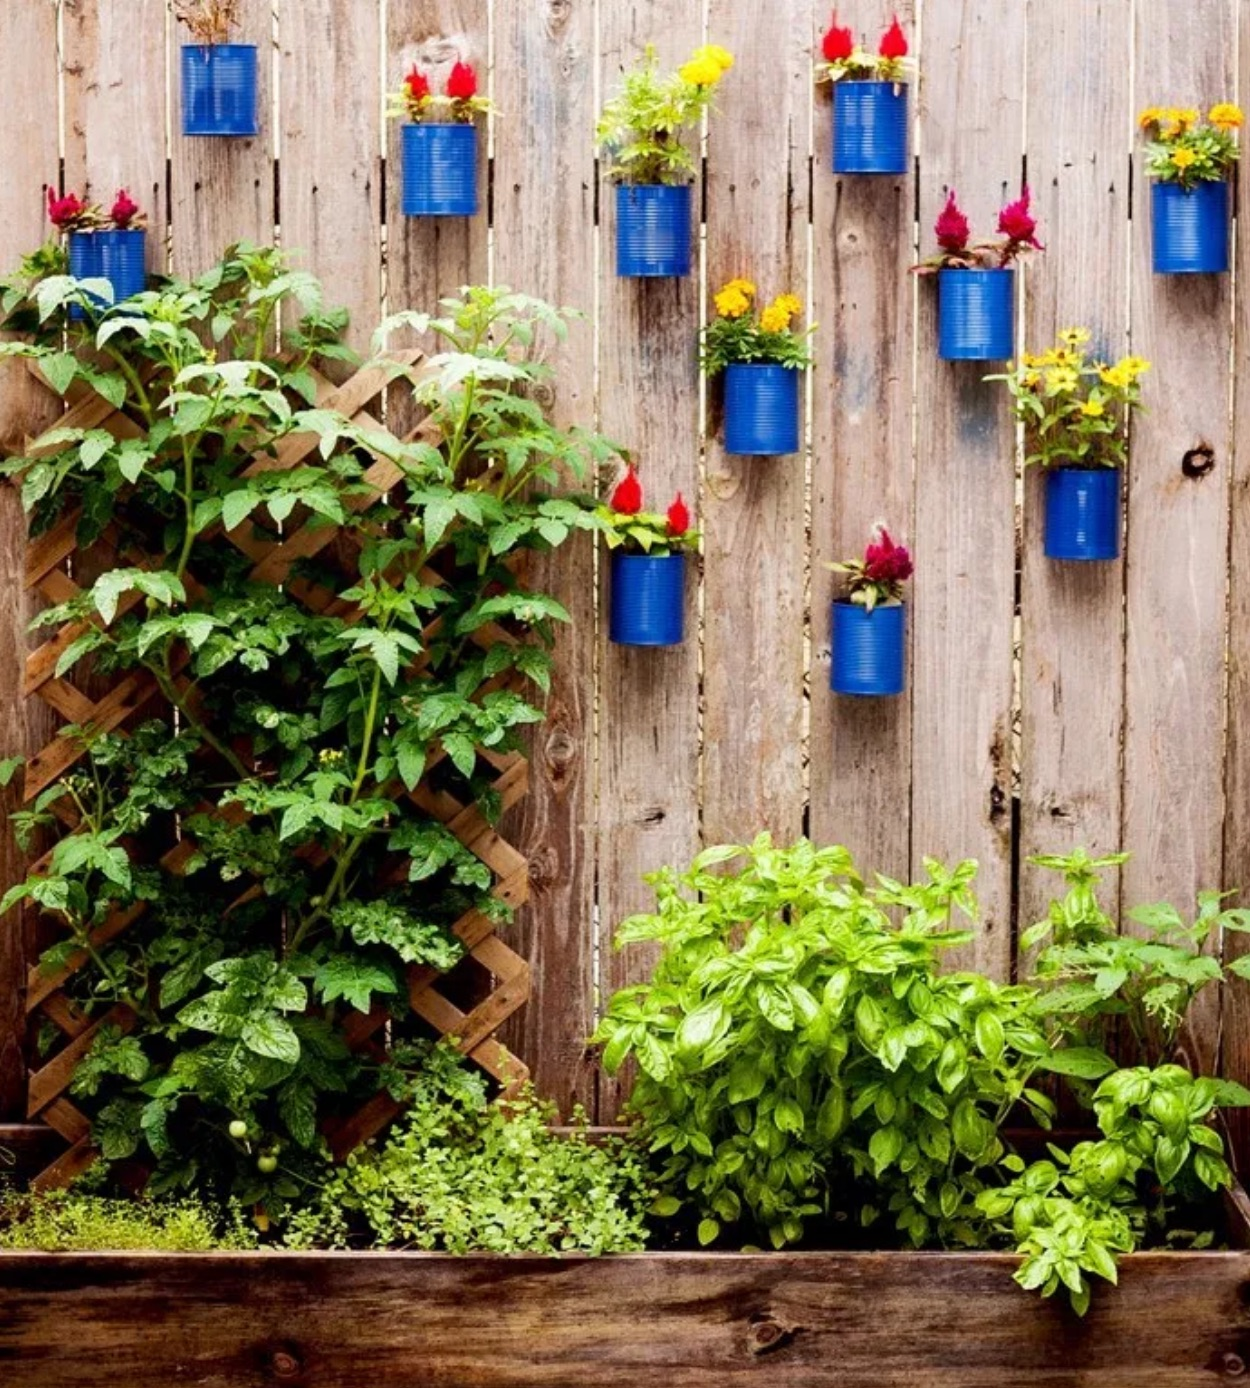 Tin cans on fence